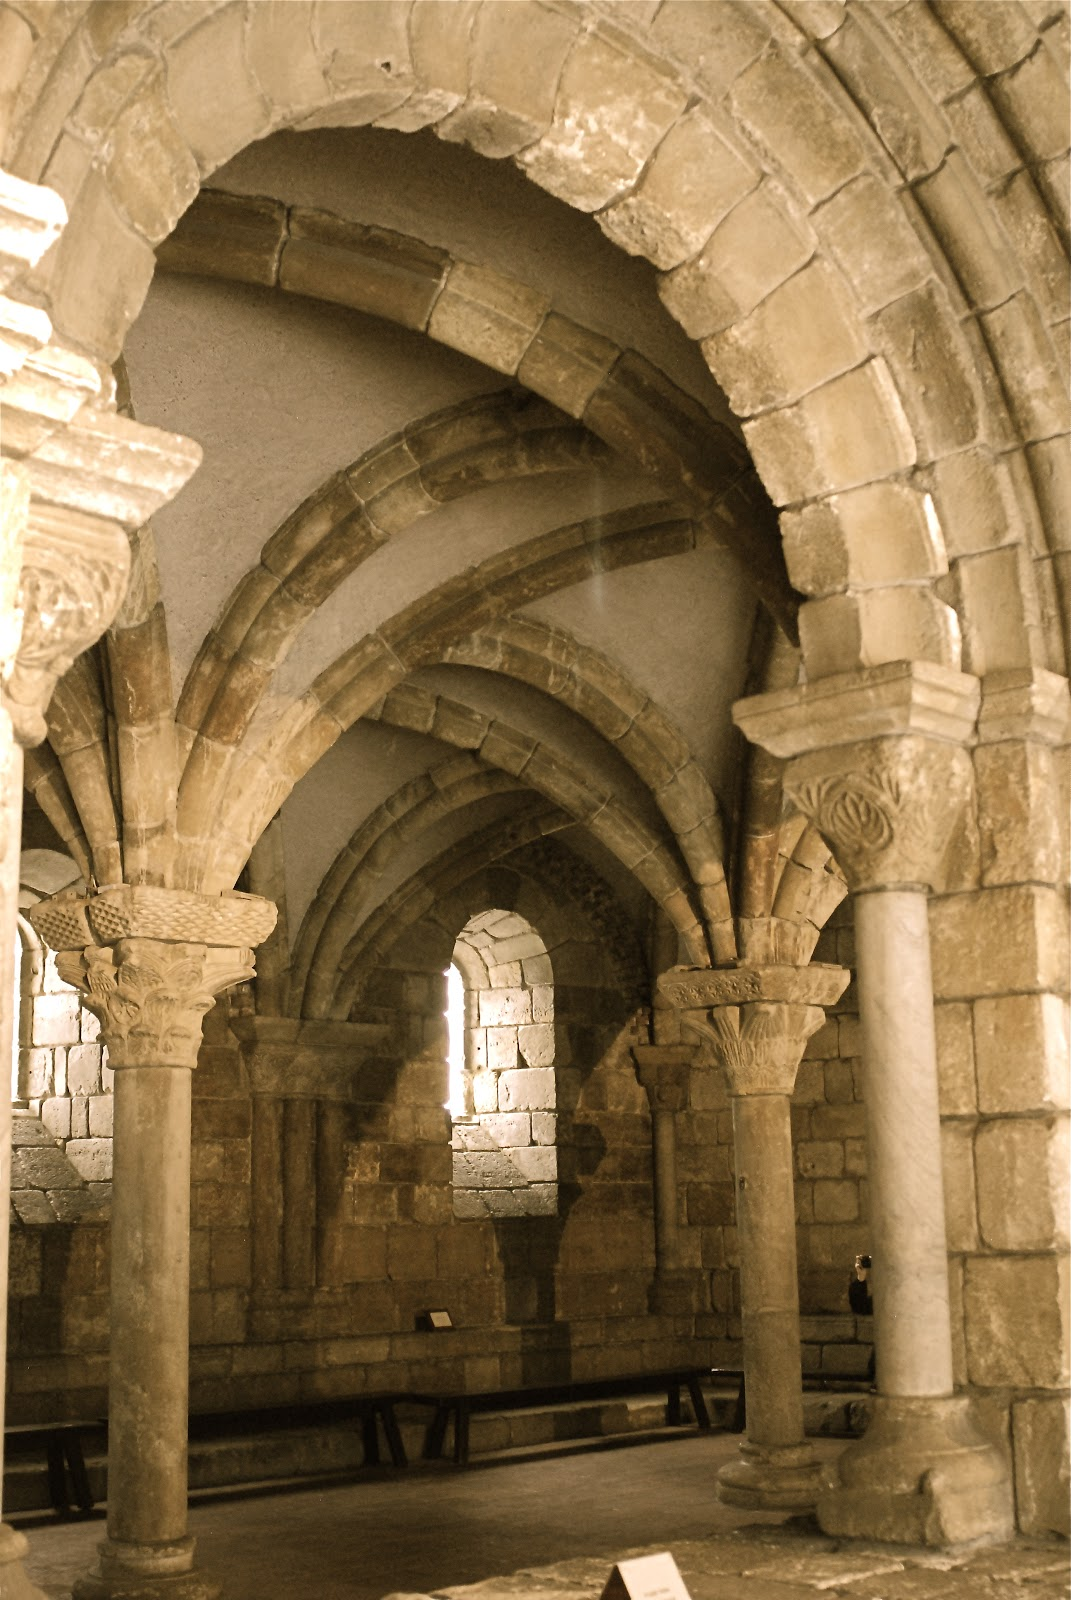 NYC ♥ NYC: The Cloisters Museum